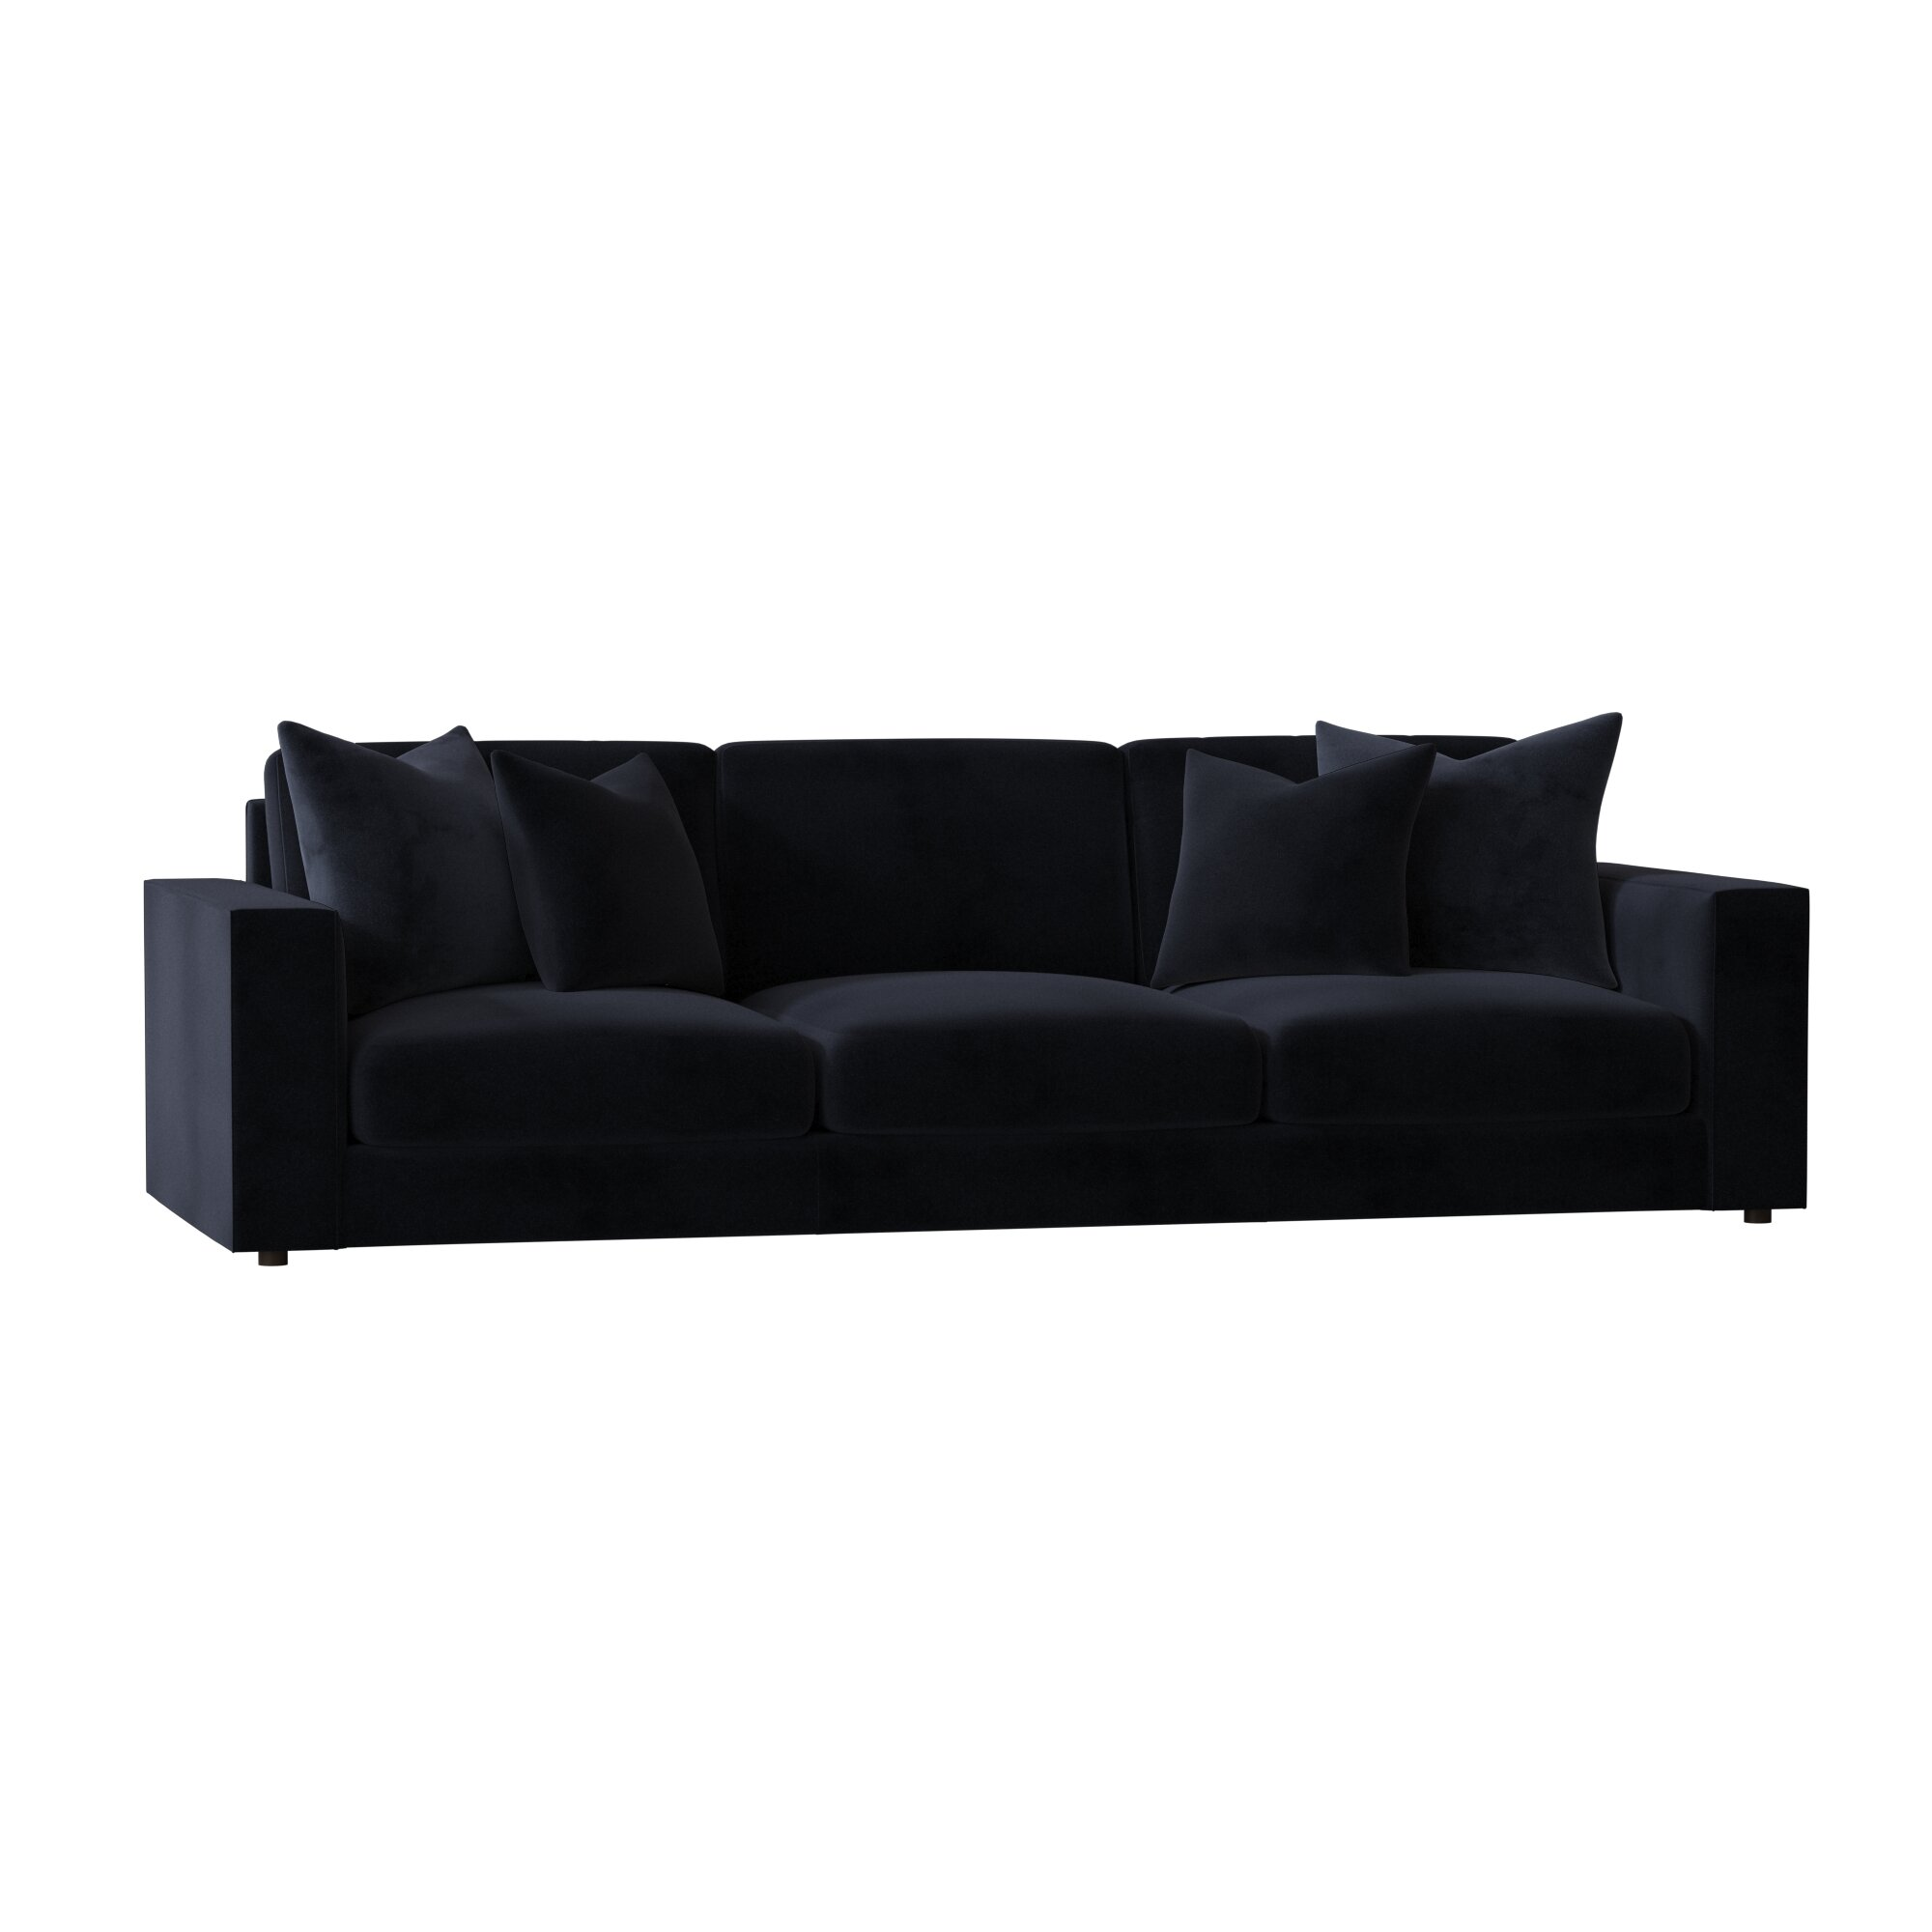 lexington laurel canyon bellvue sofa wayfair rh wayfair com